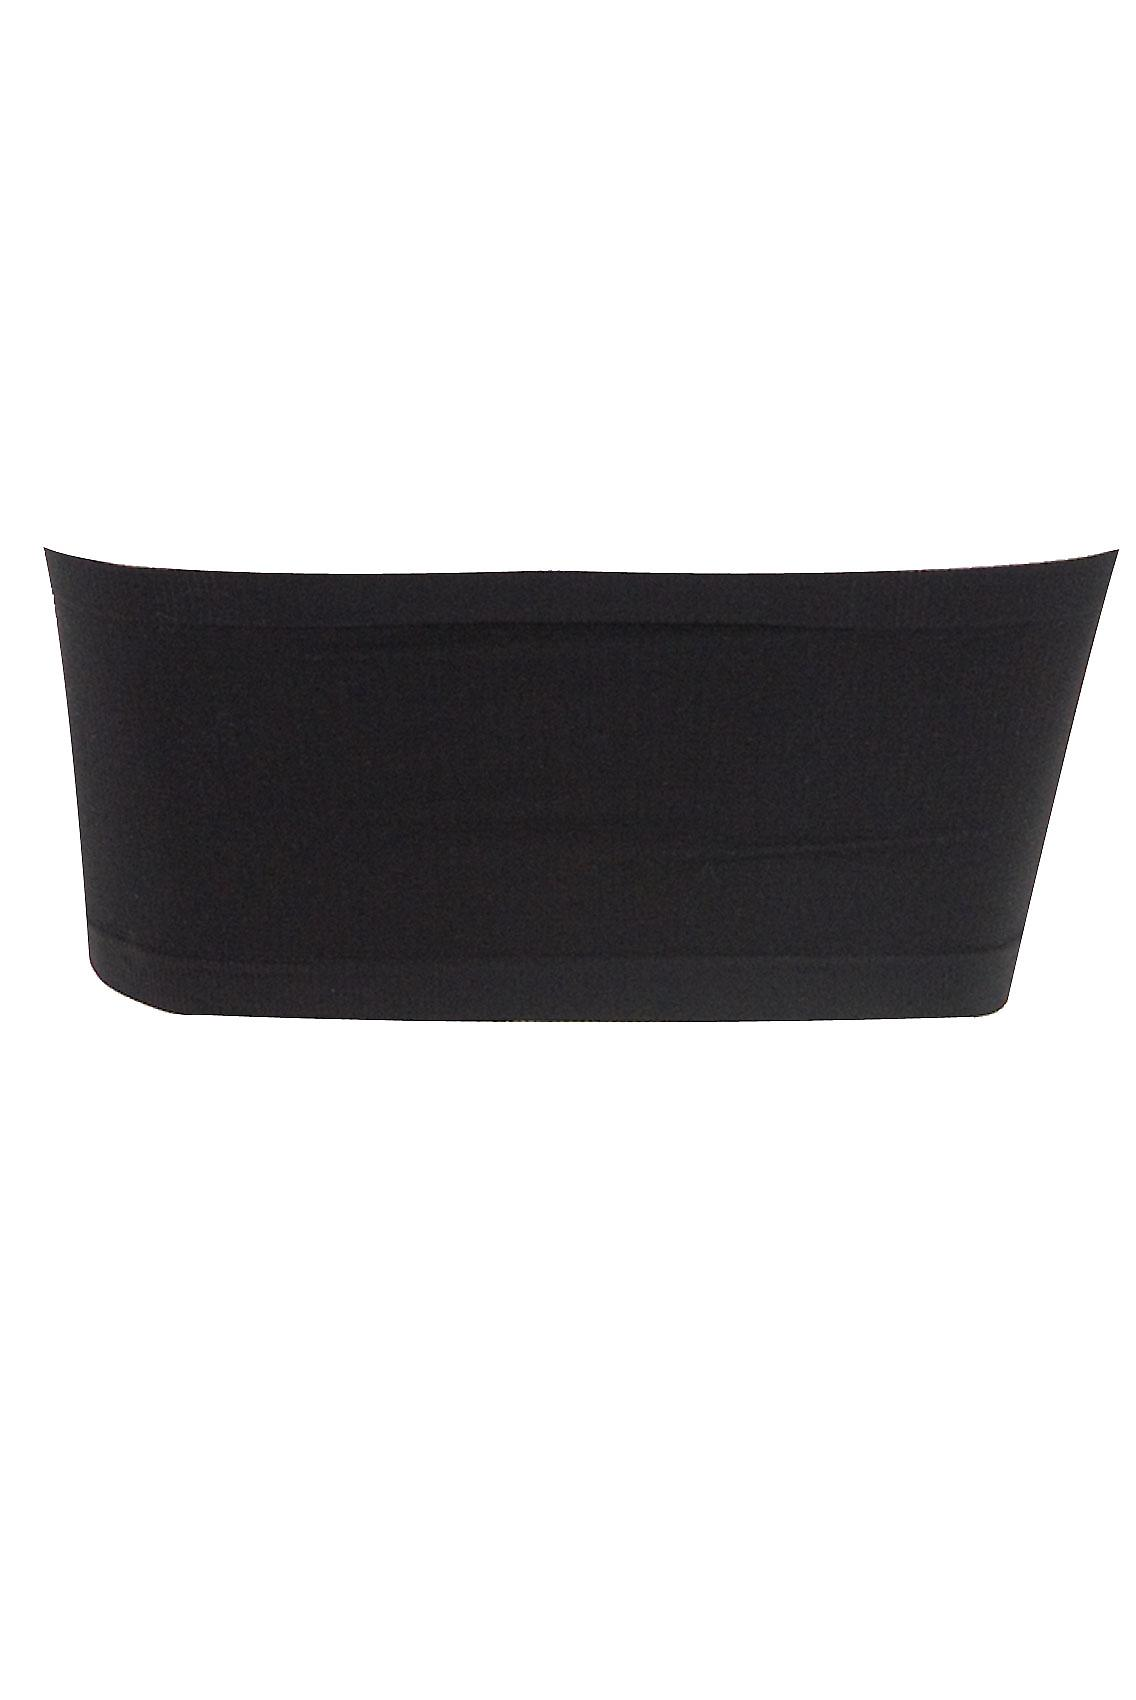 Black Seamless Surefit Bandeau Bra With Soft Padded Full Cups